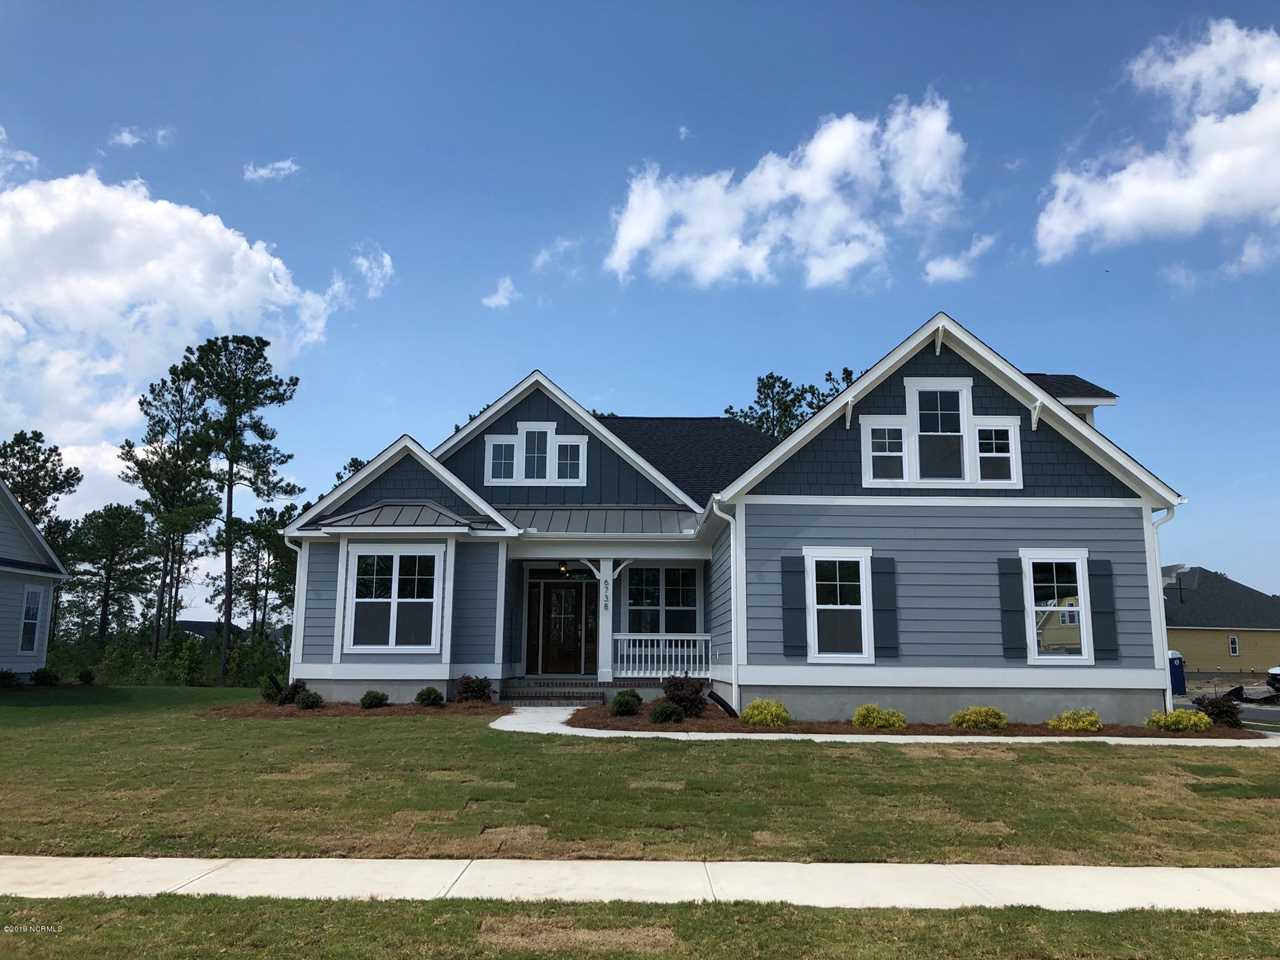 Home For Sale At 6738 Chessington Lane, Leland NC in Brunswick Forest Photo 1